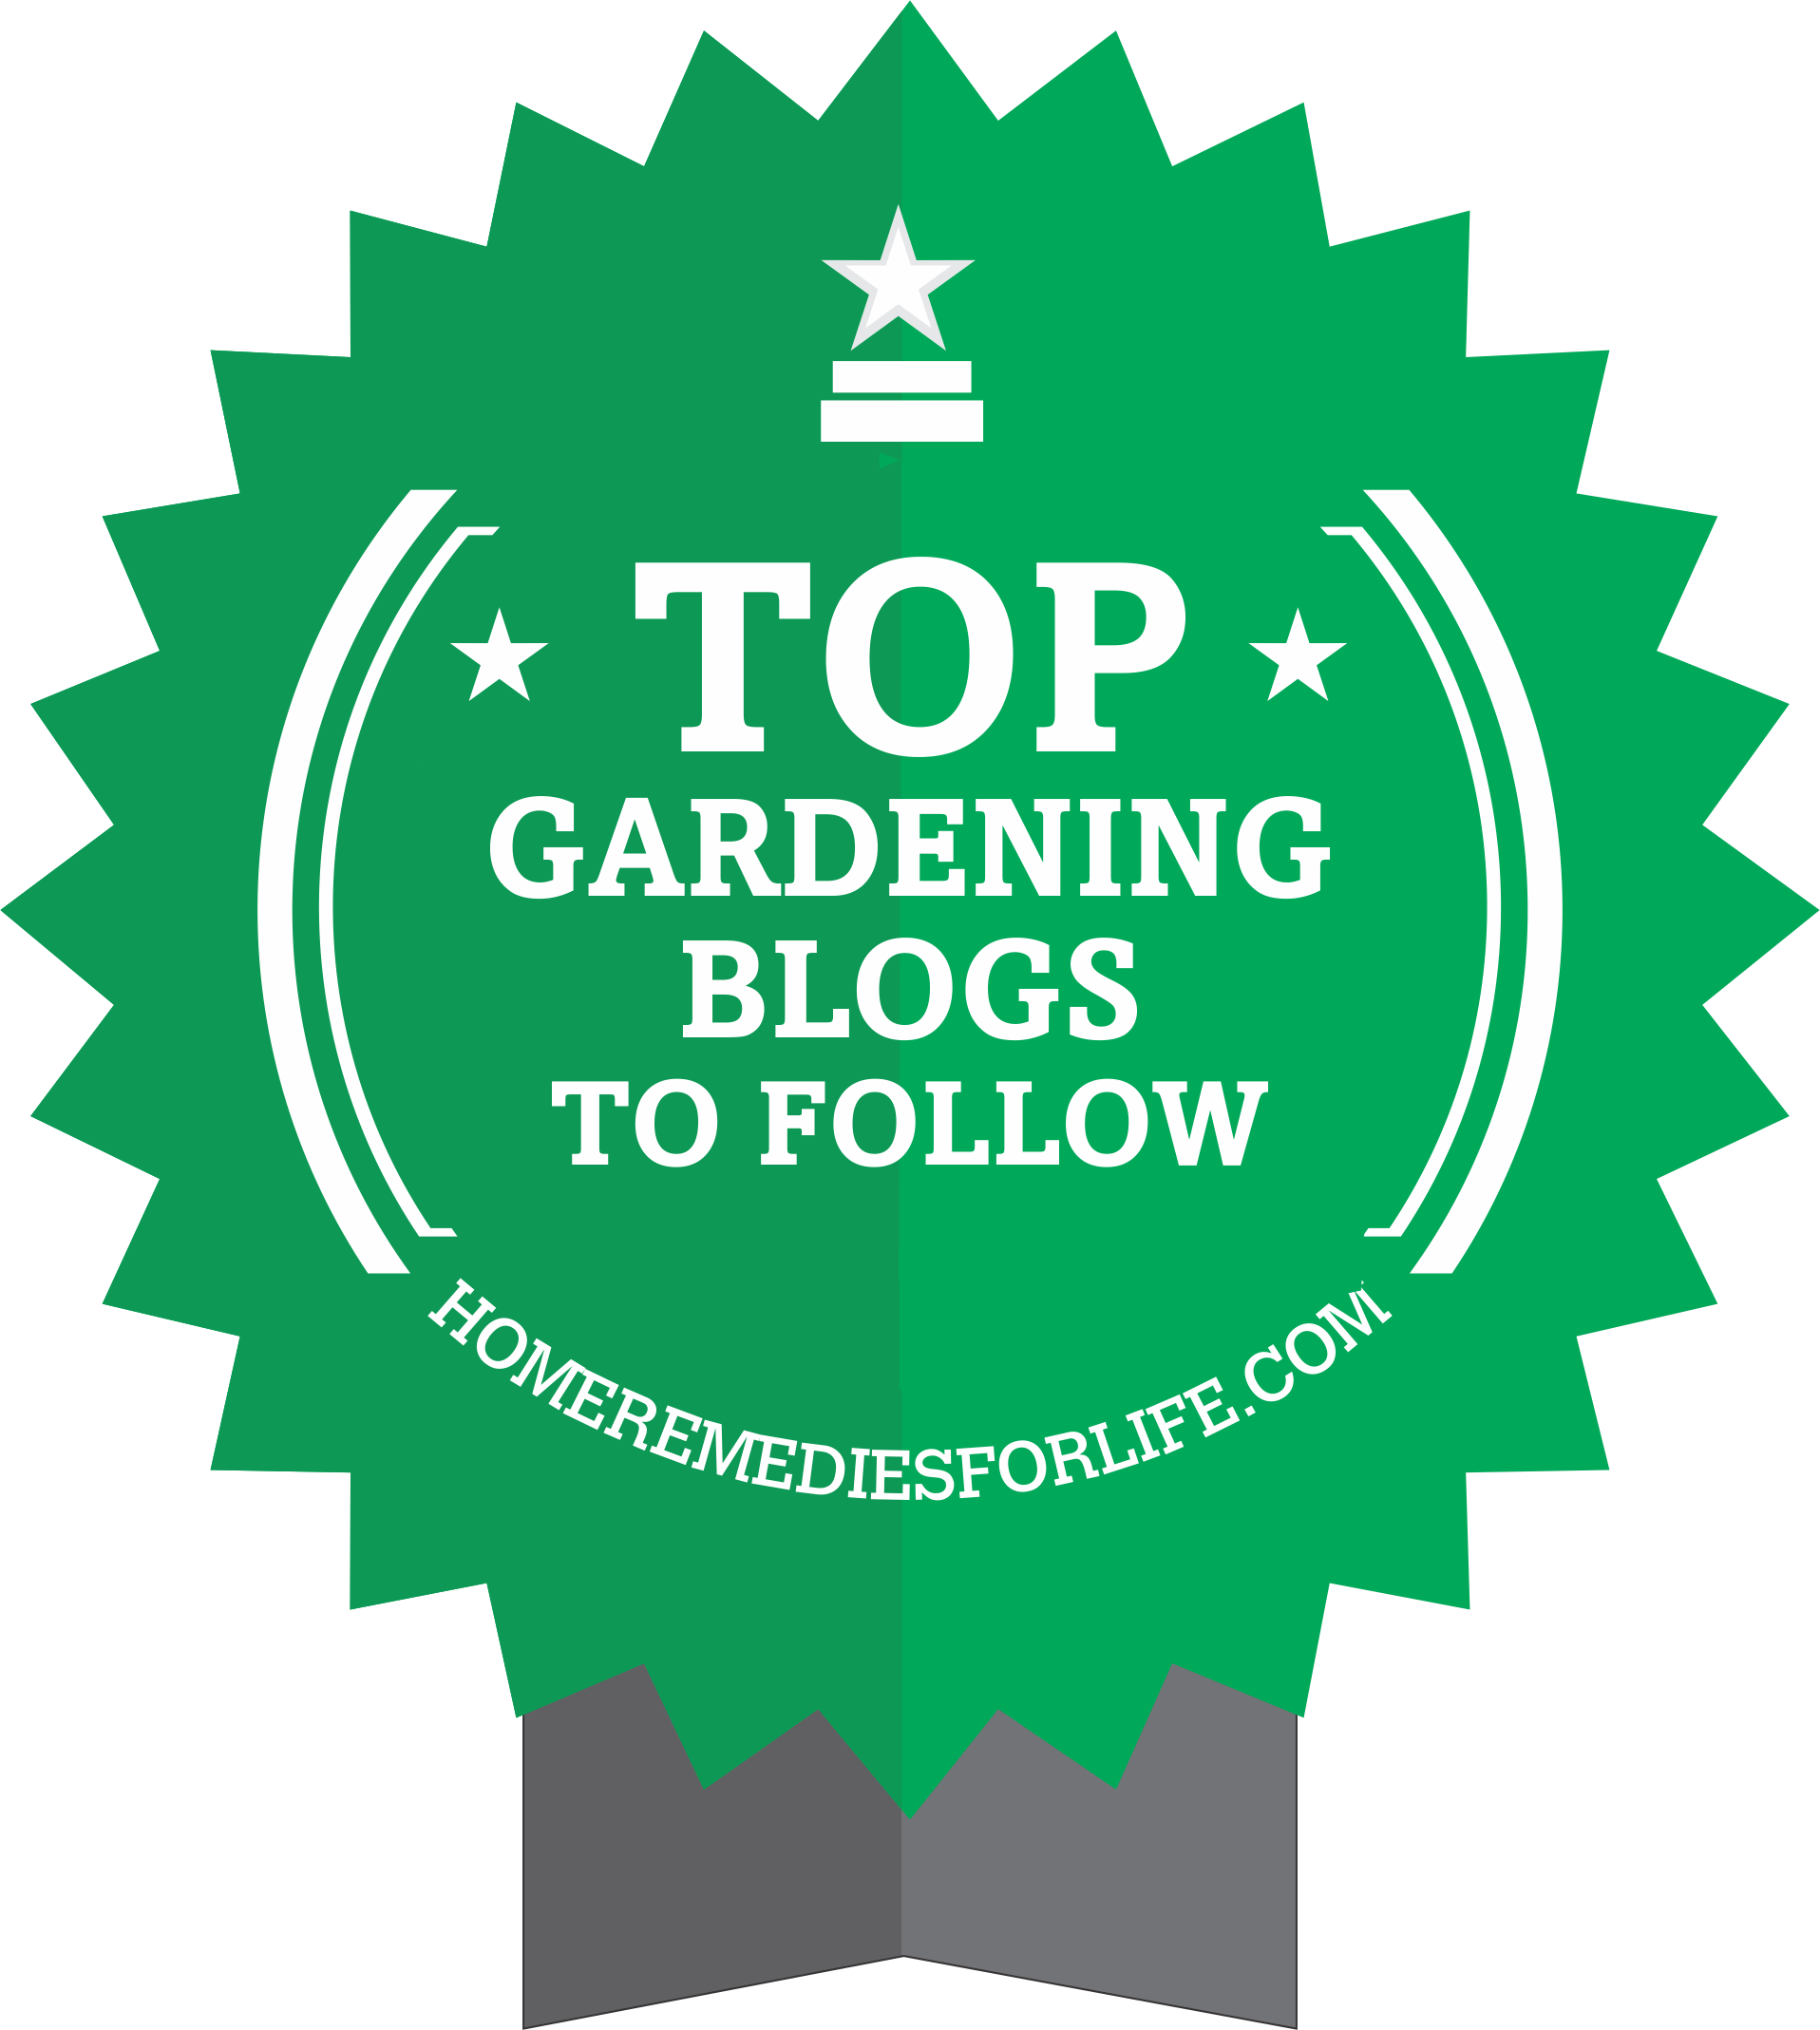 Top-Gardening-Blogs-Follow